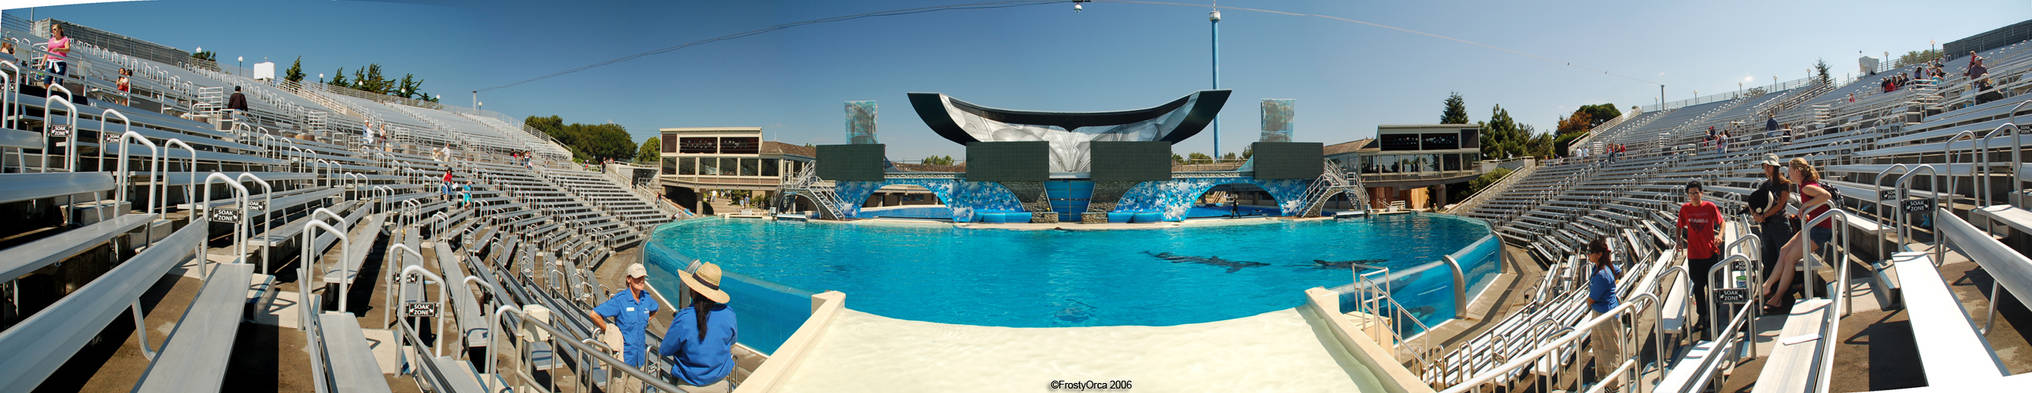 Sea World CA panoramic 2.0